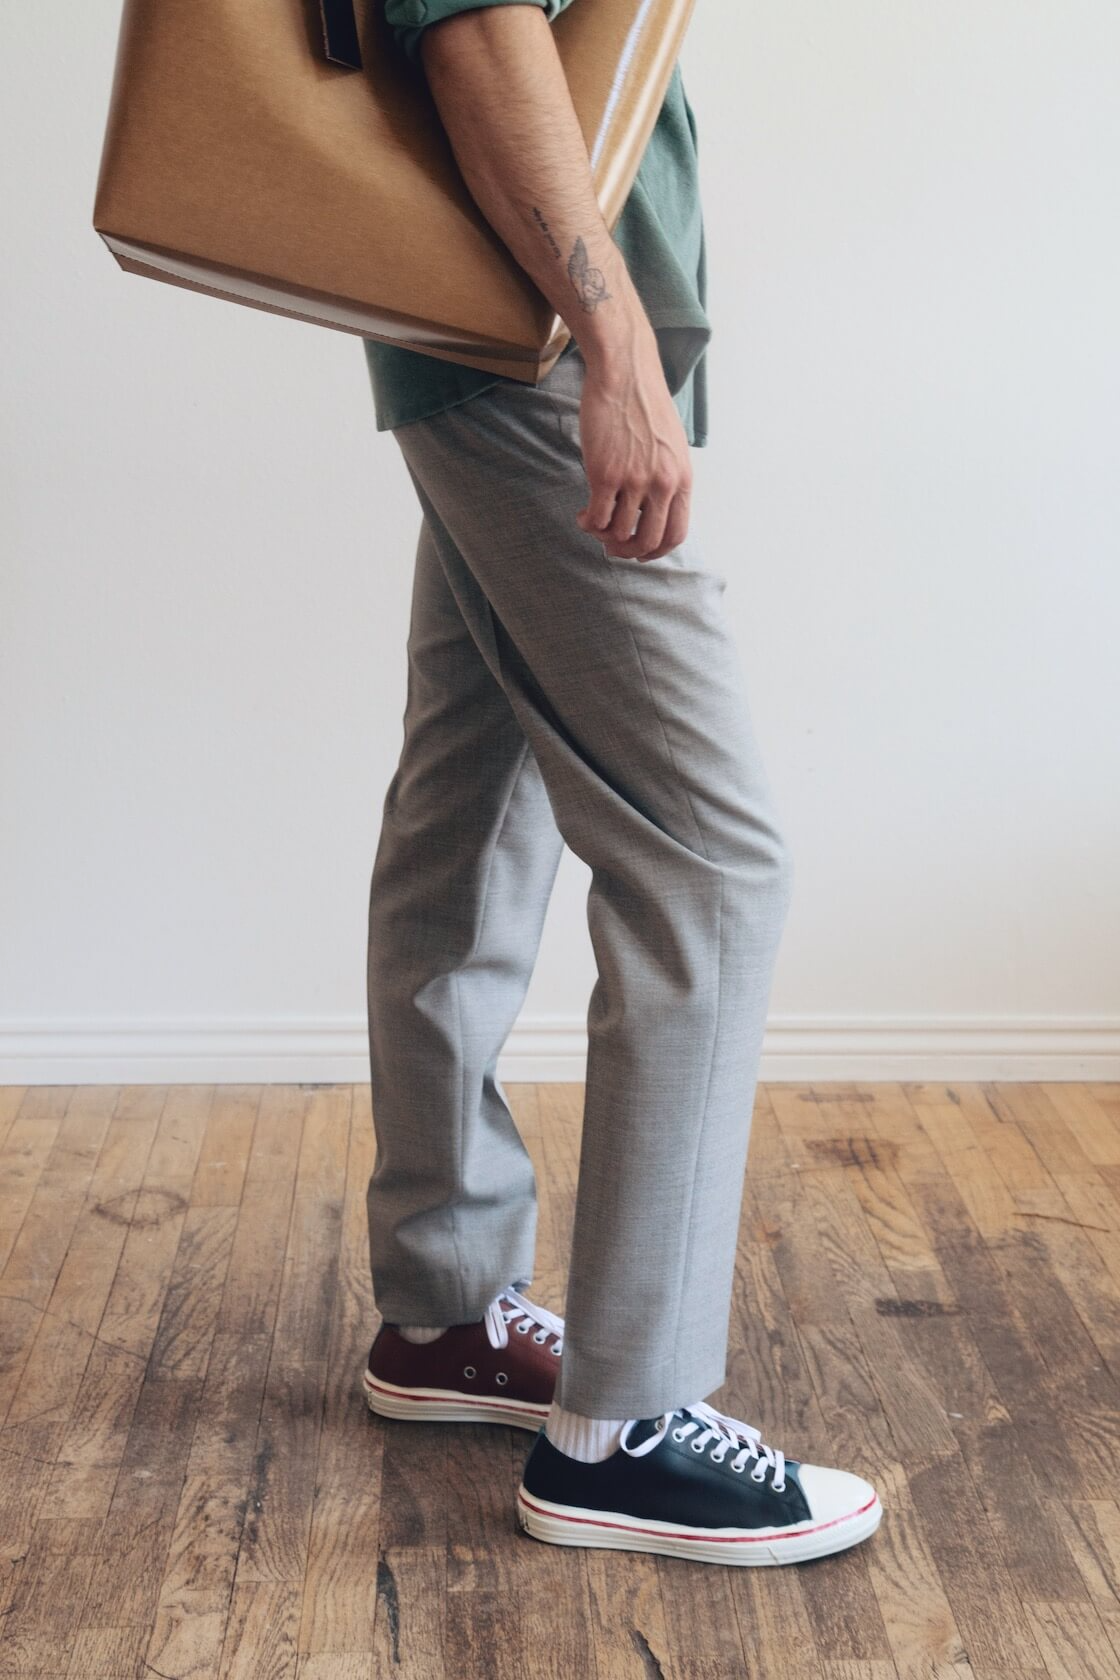 harmony paris caleb shirt and peter trousers, marni tribeca shopping bag and low top gooye shoes on body